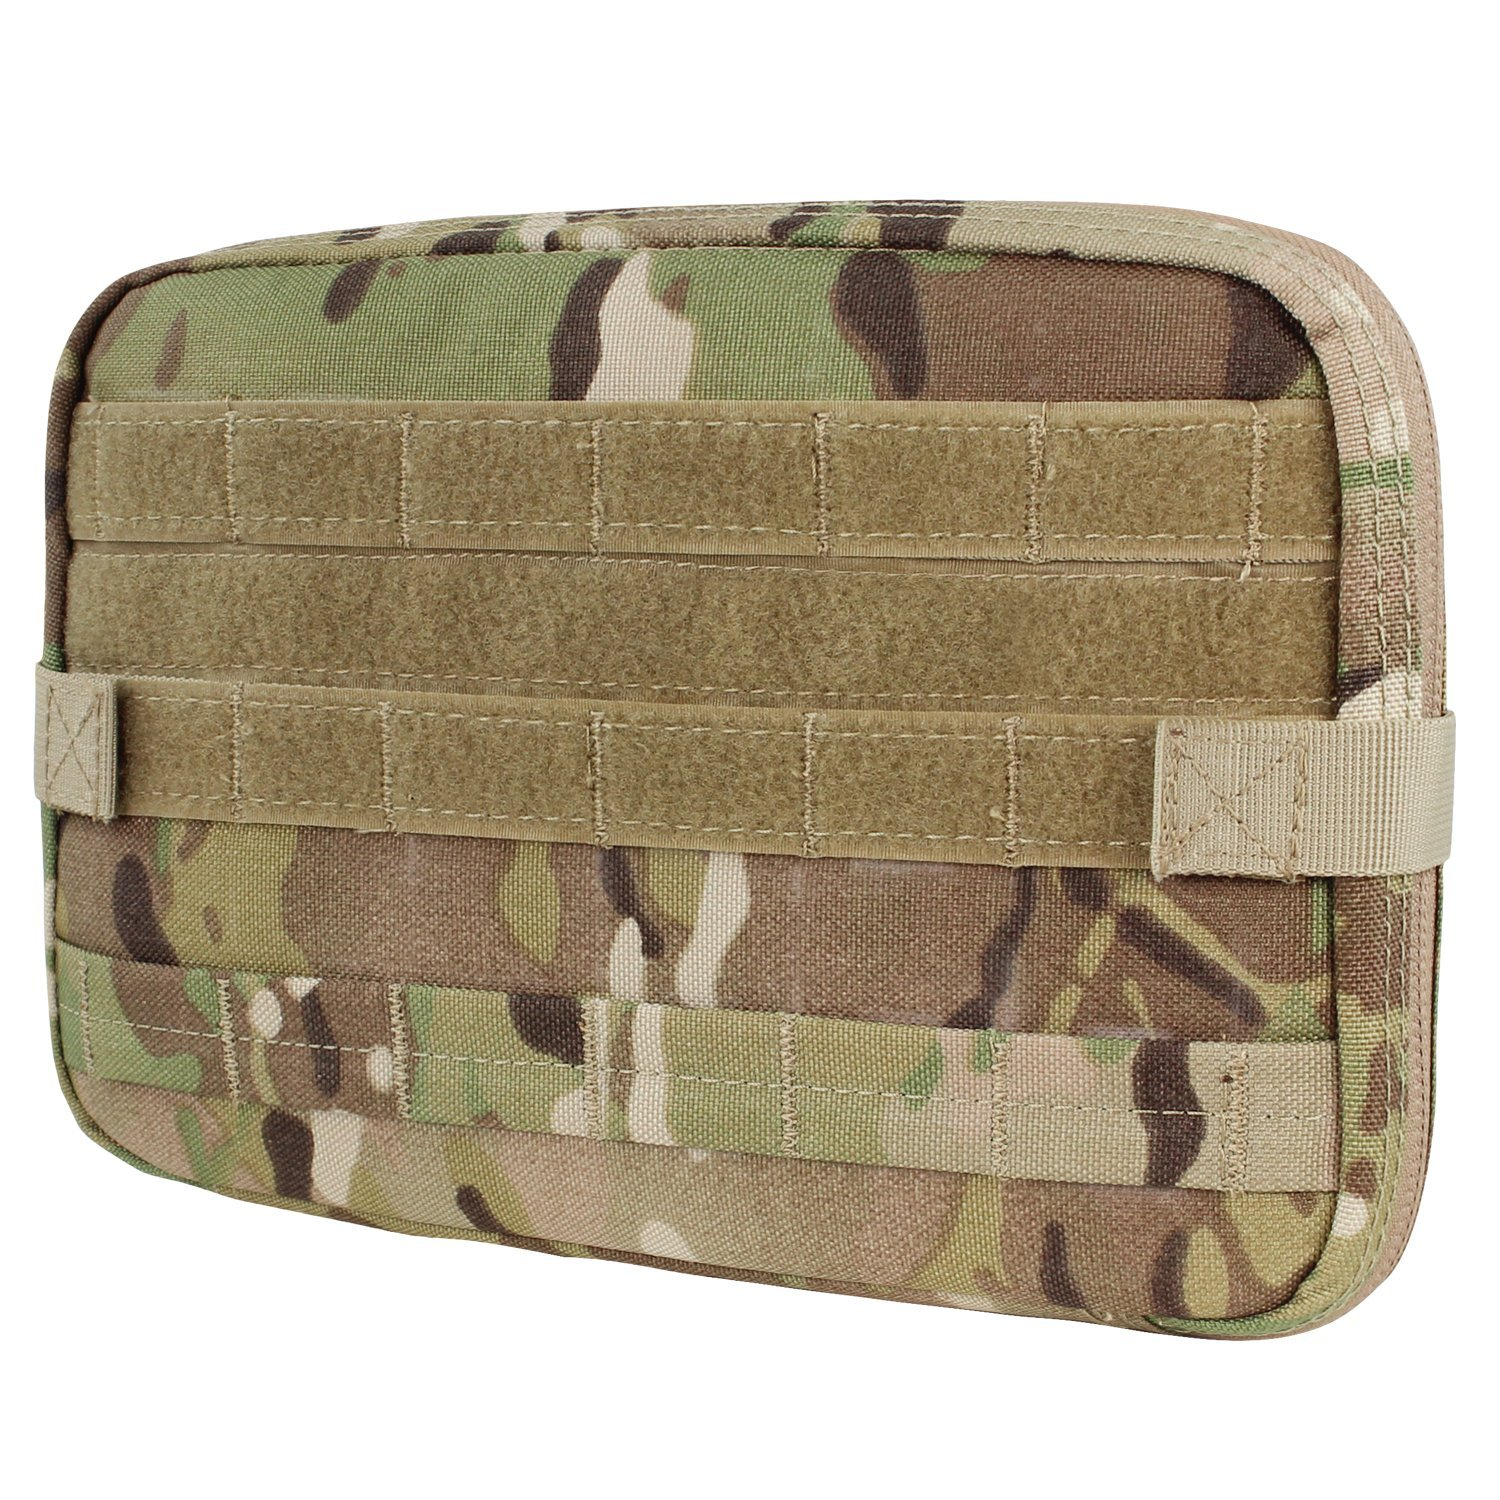 T and T Pouch (Multicam), -Genuine Crye Precision Multicam material By CONDOR